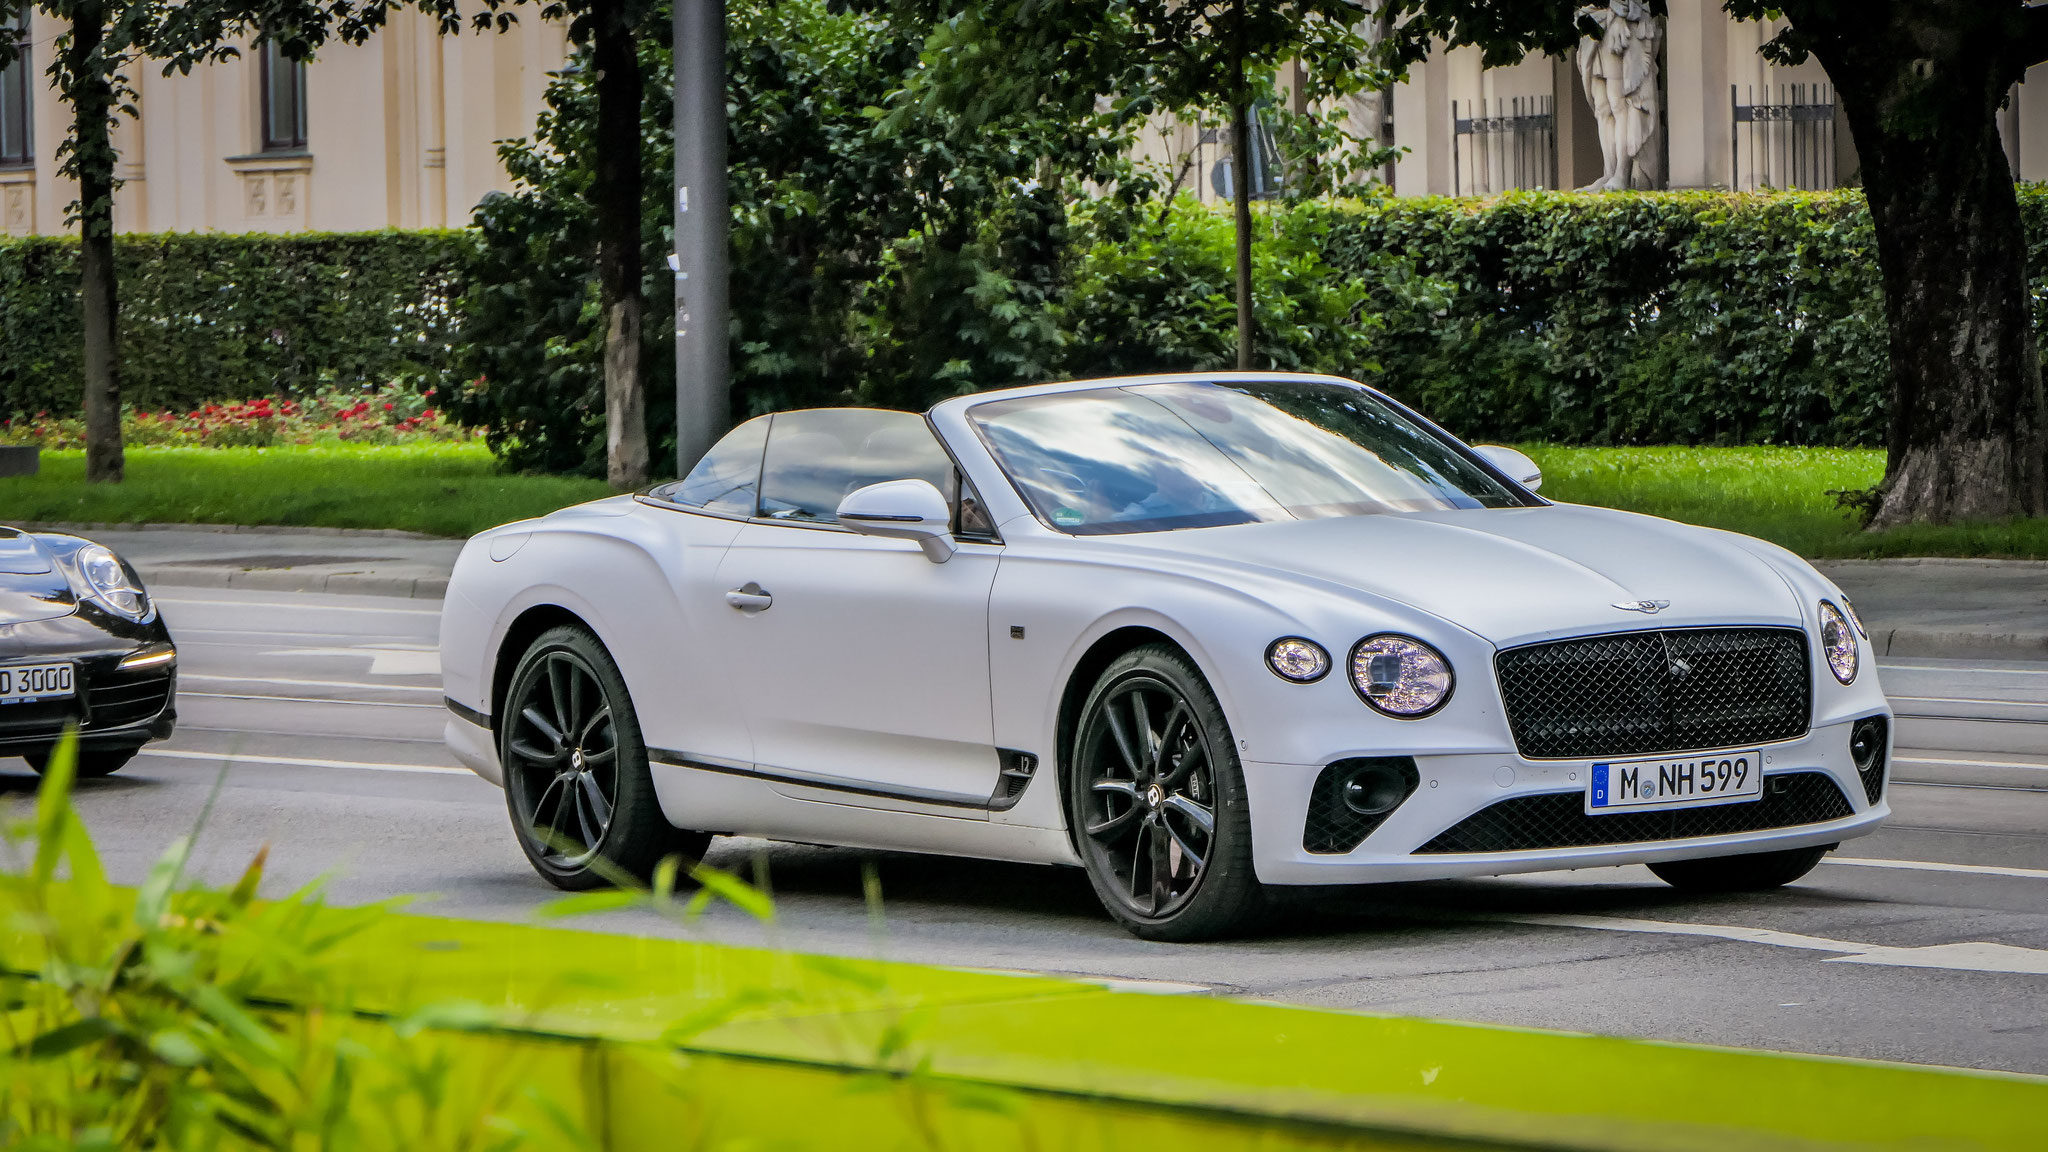 Bentley Continental GTC - M-NH-599